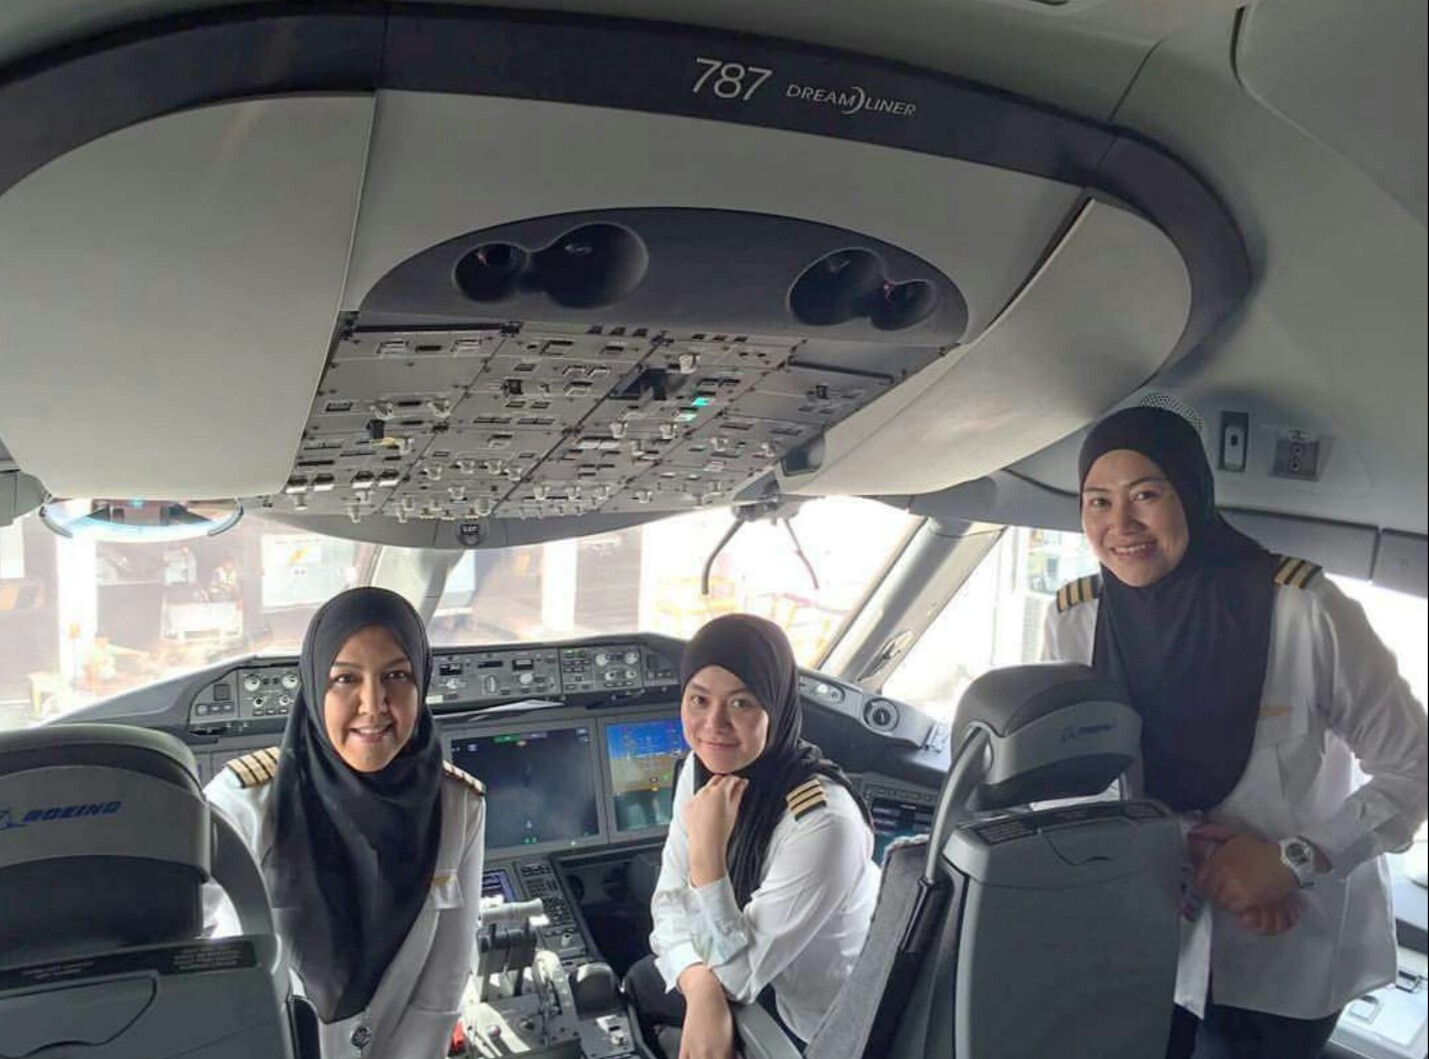 Muslim women in Flight